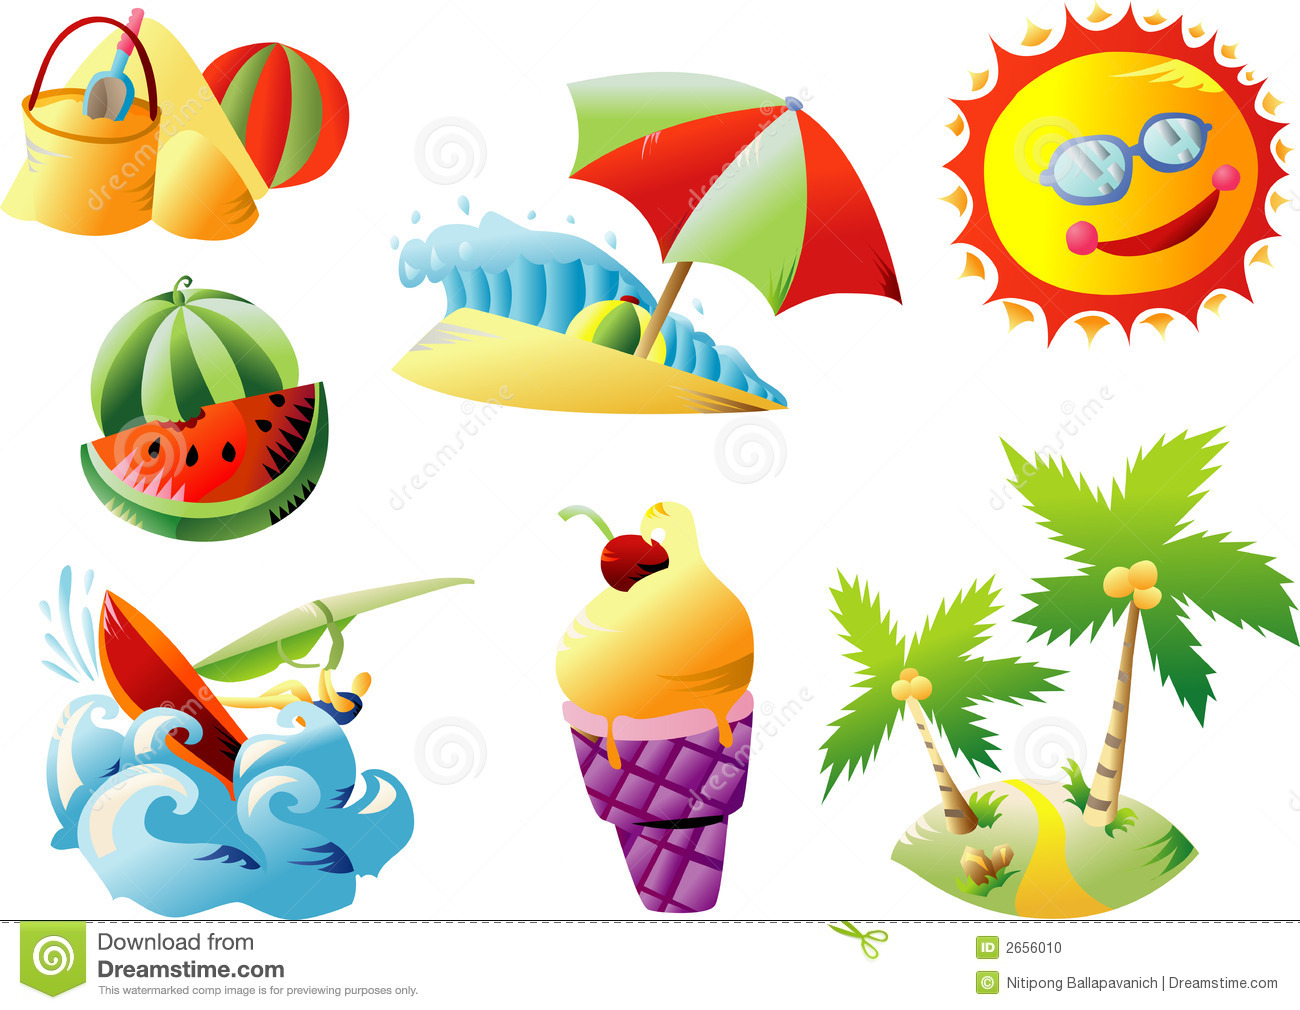 Summer Clip Art Free Images | Clipart Panda - Free Clipart Images